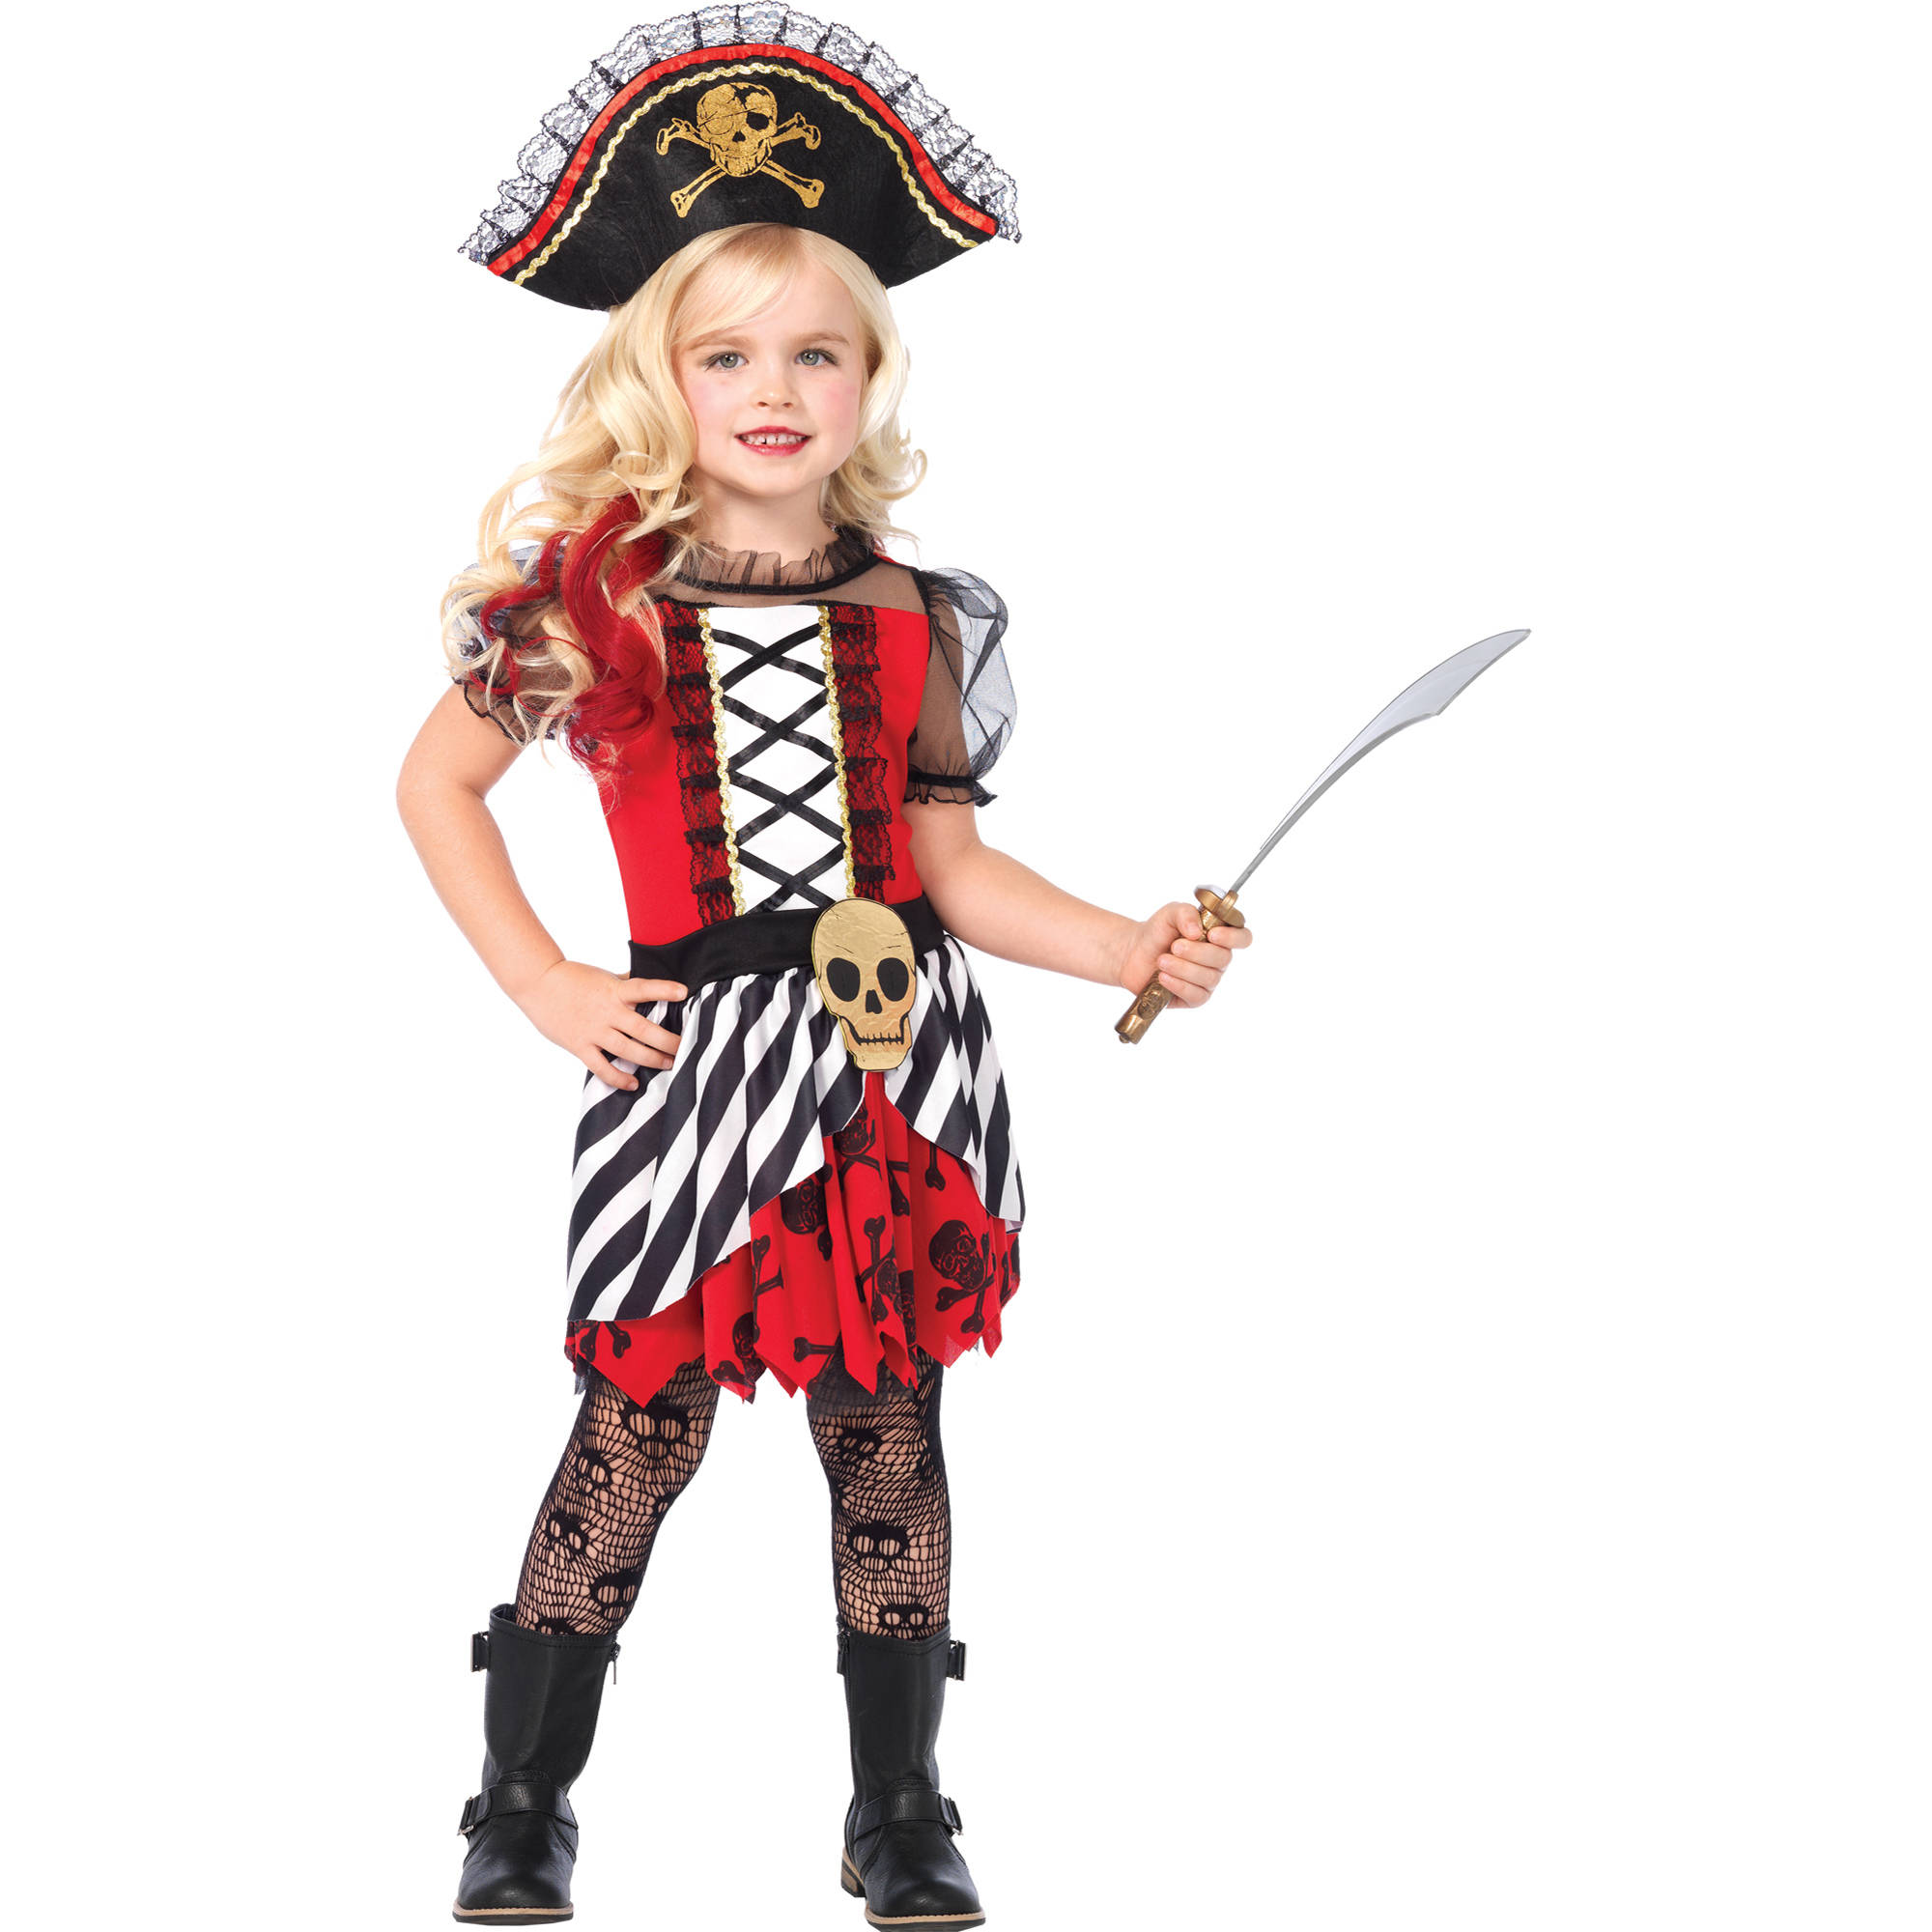 Rogue Pirate 2-Piece Child Halloween Costume